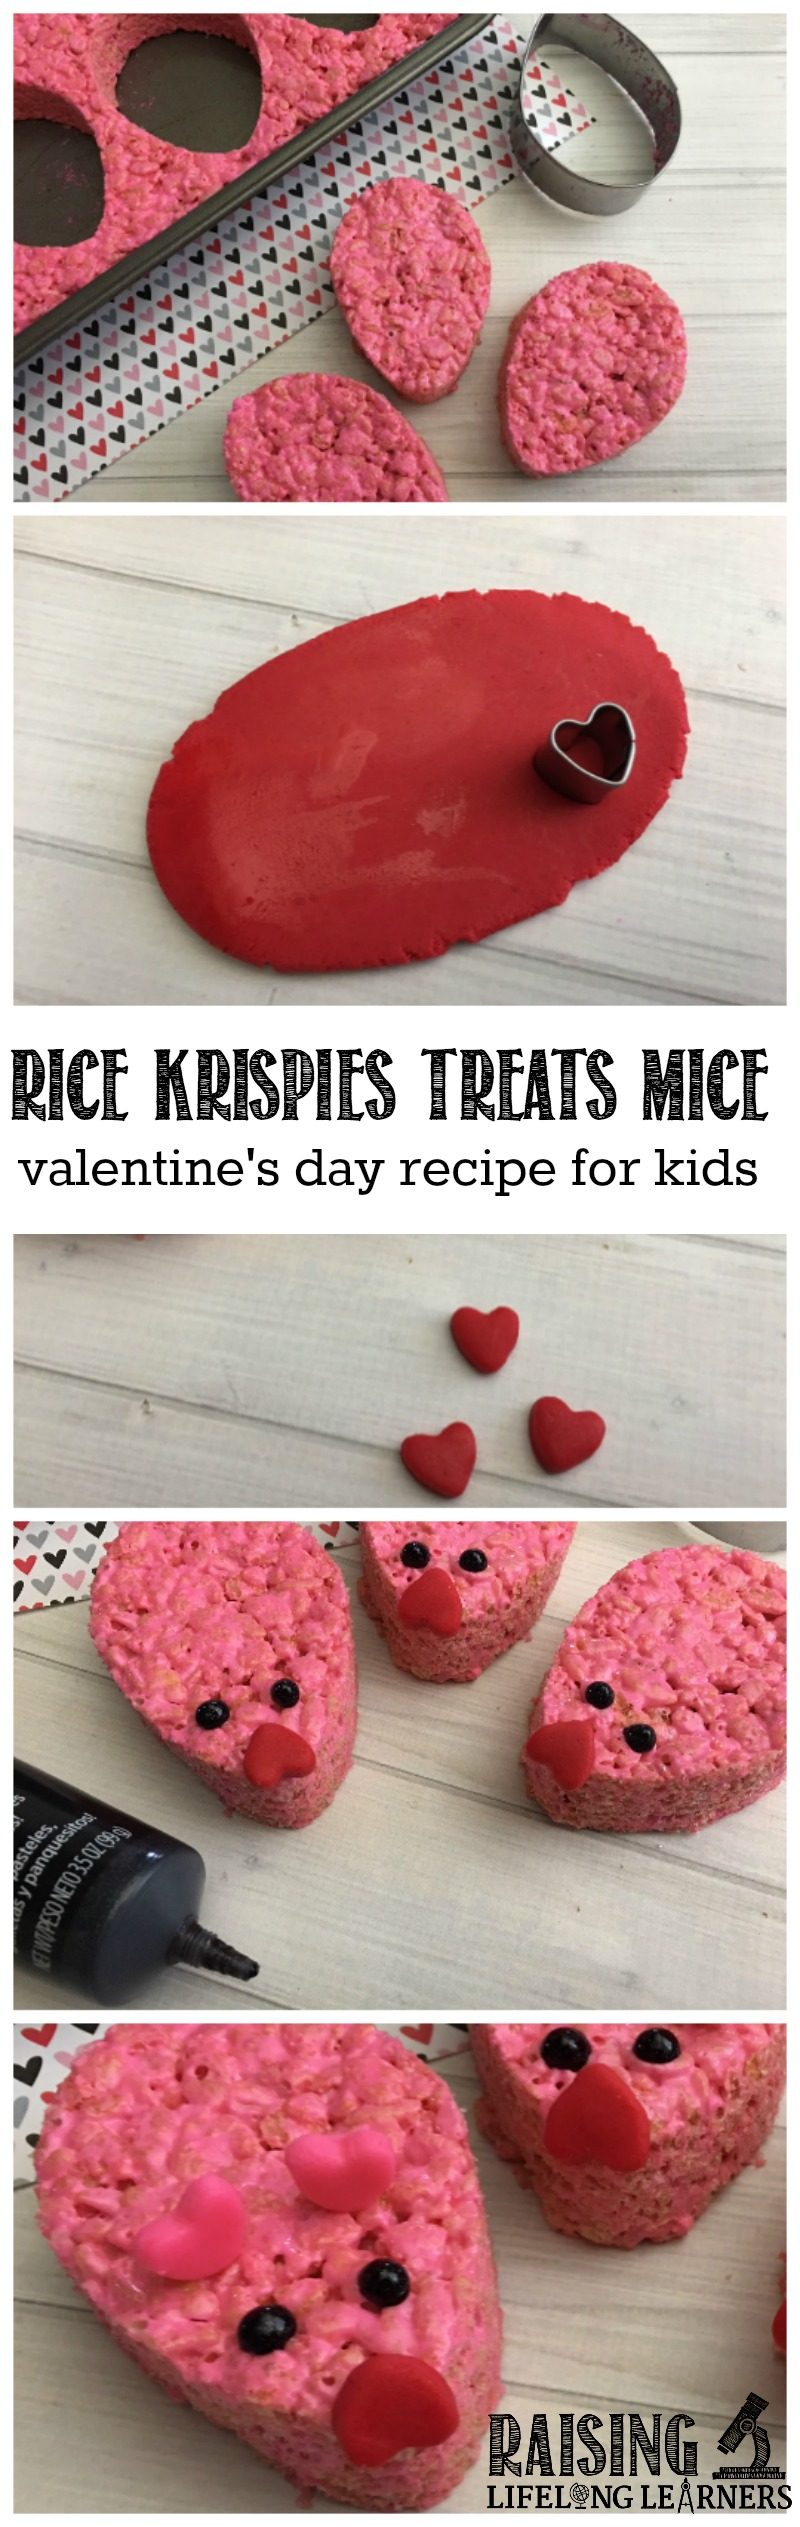 Rice Krispies Treats Mice